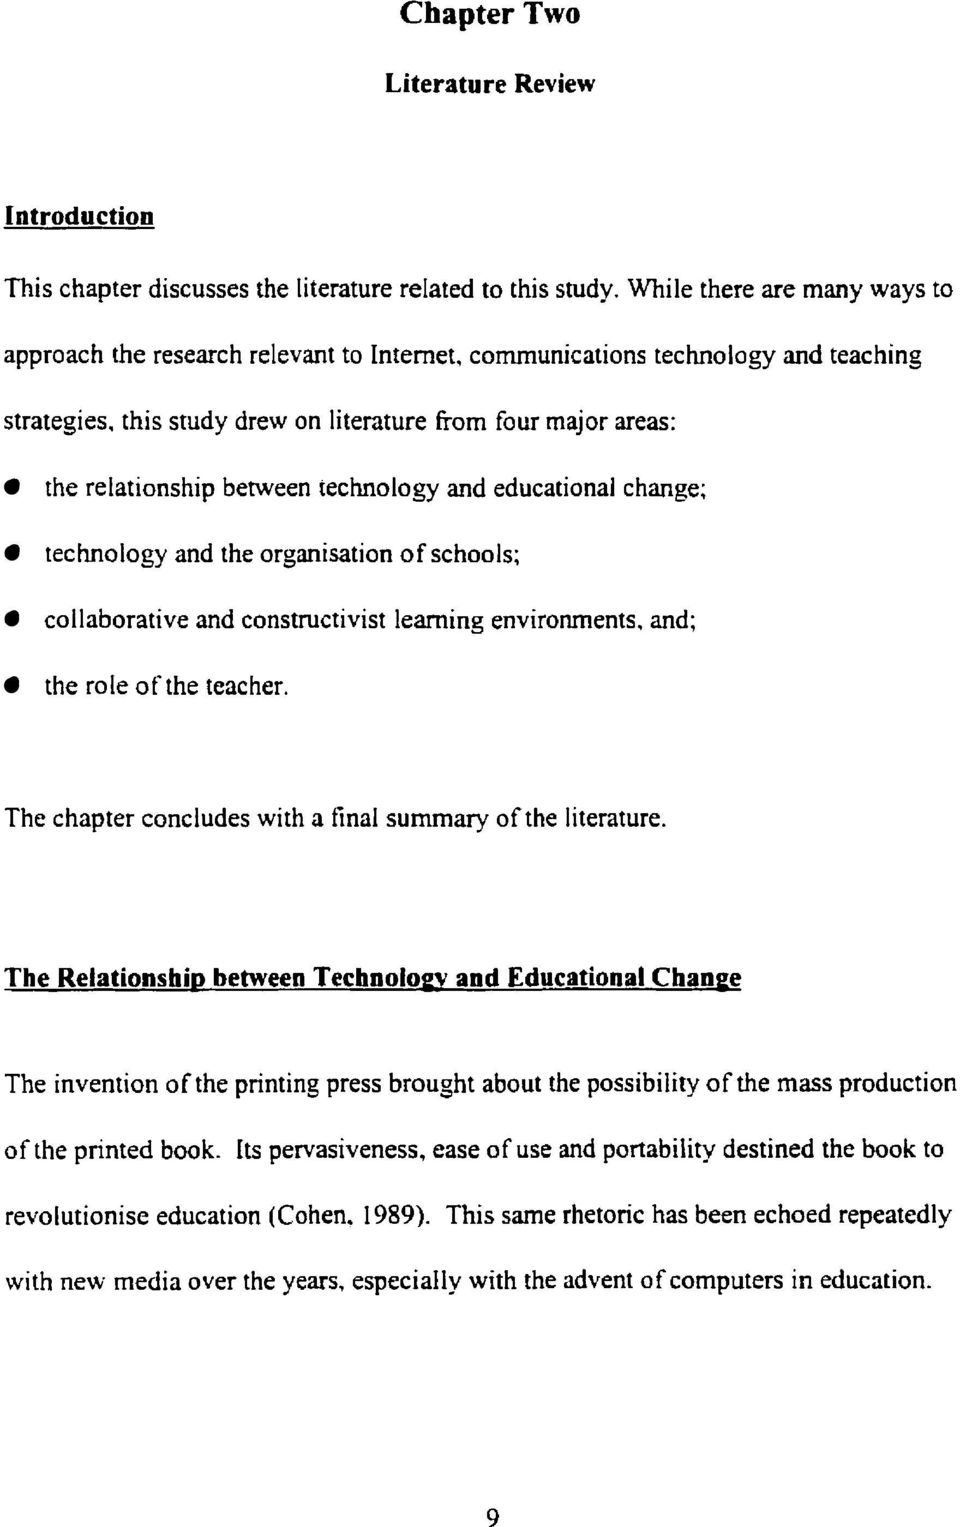 this study drew on literature from four major areas: the relationship between iechnology and educational change; technology and the organisation of schools; collaborative and constructivist leaming